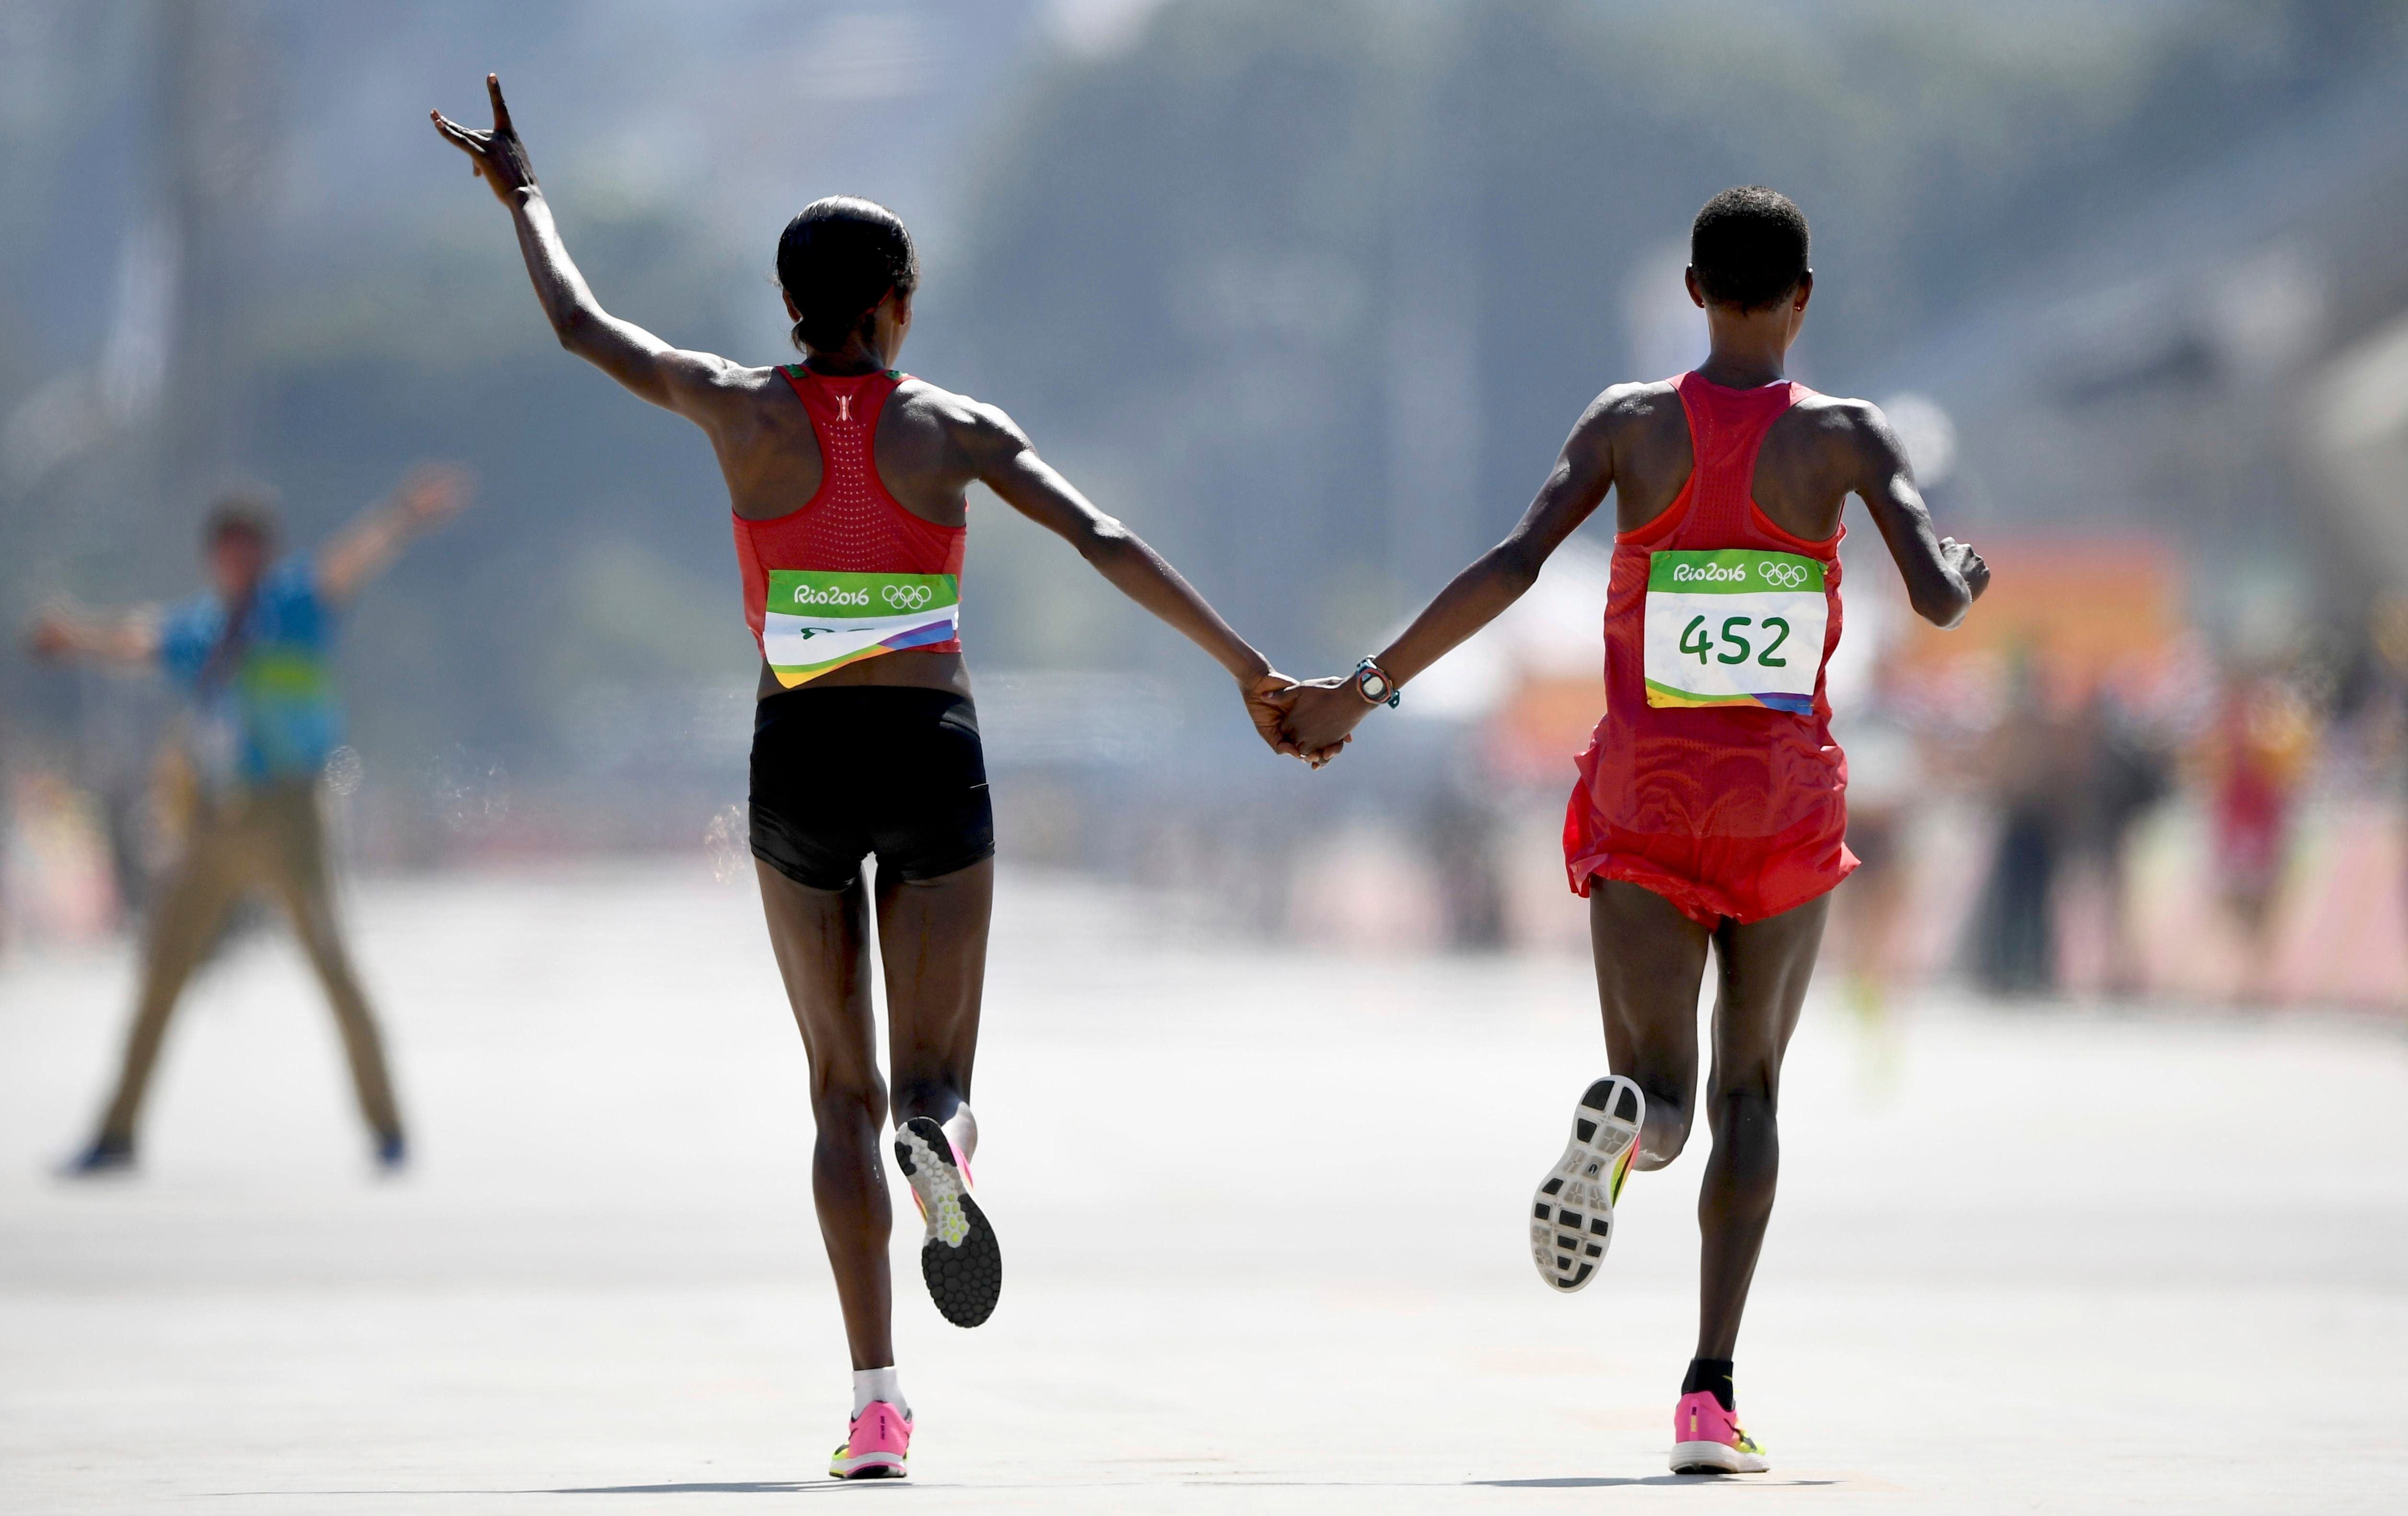 The Spirit Of The Olympic Games, Captured In 1 Heartwarming